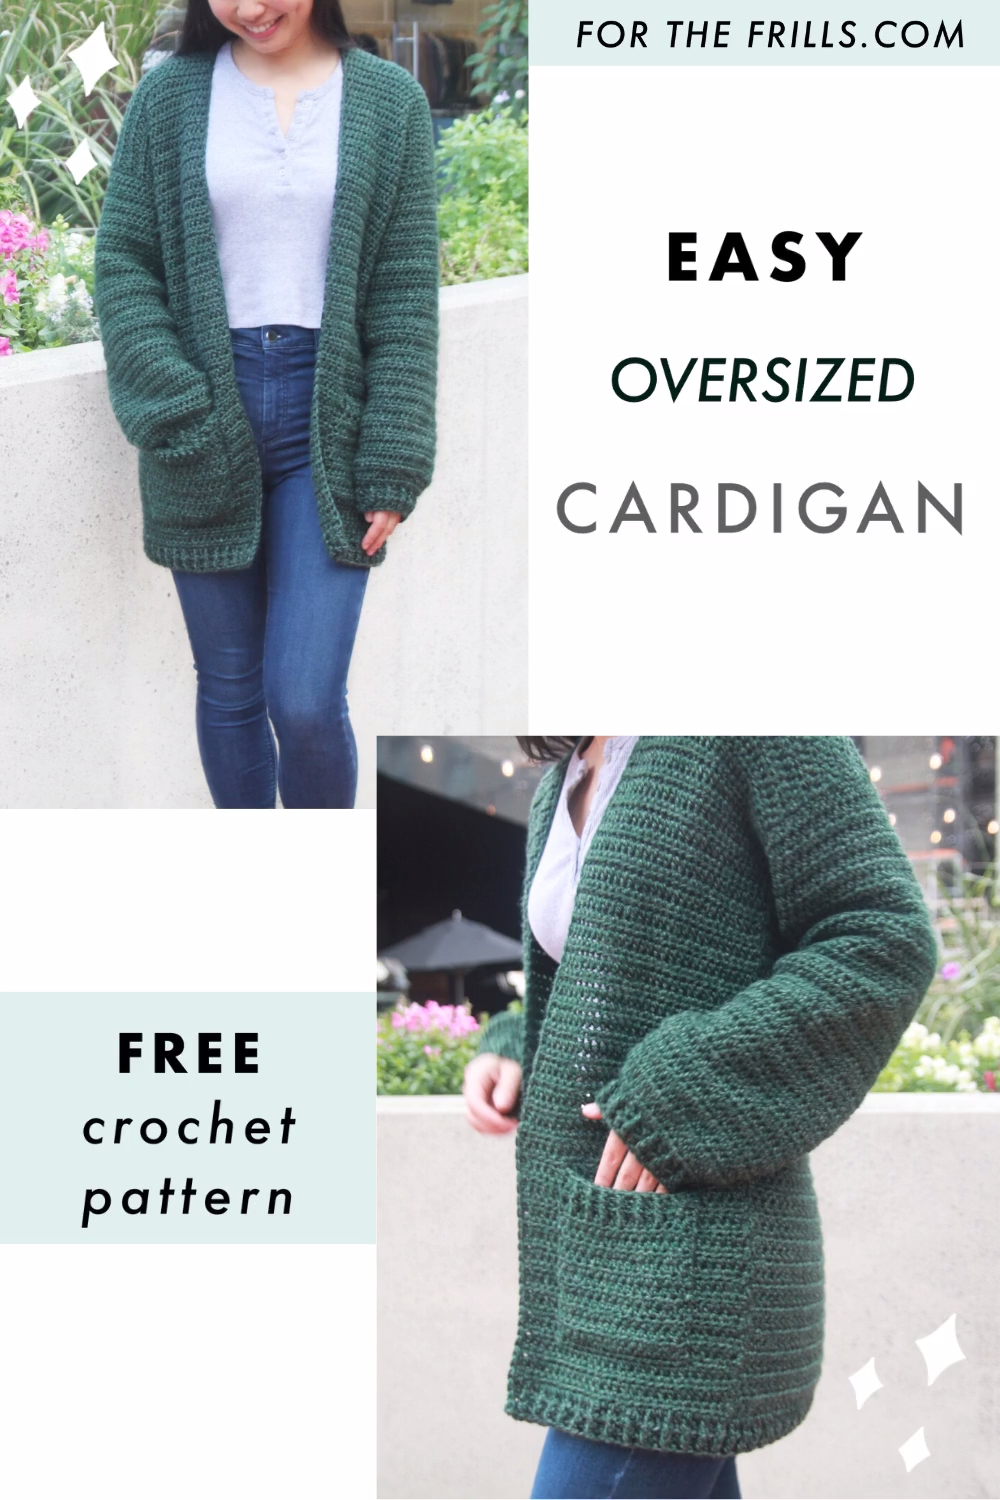 Photo of Simple Crochet Cardigan for Beginners! Free crochet pattern + video tutorial